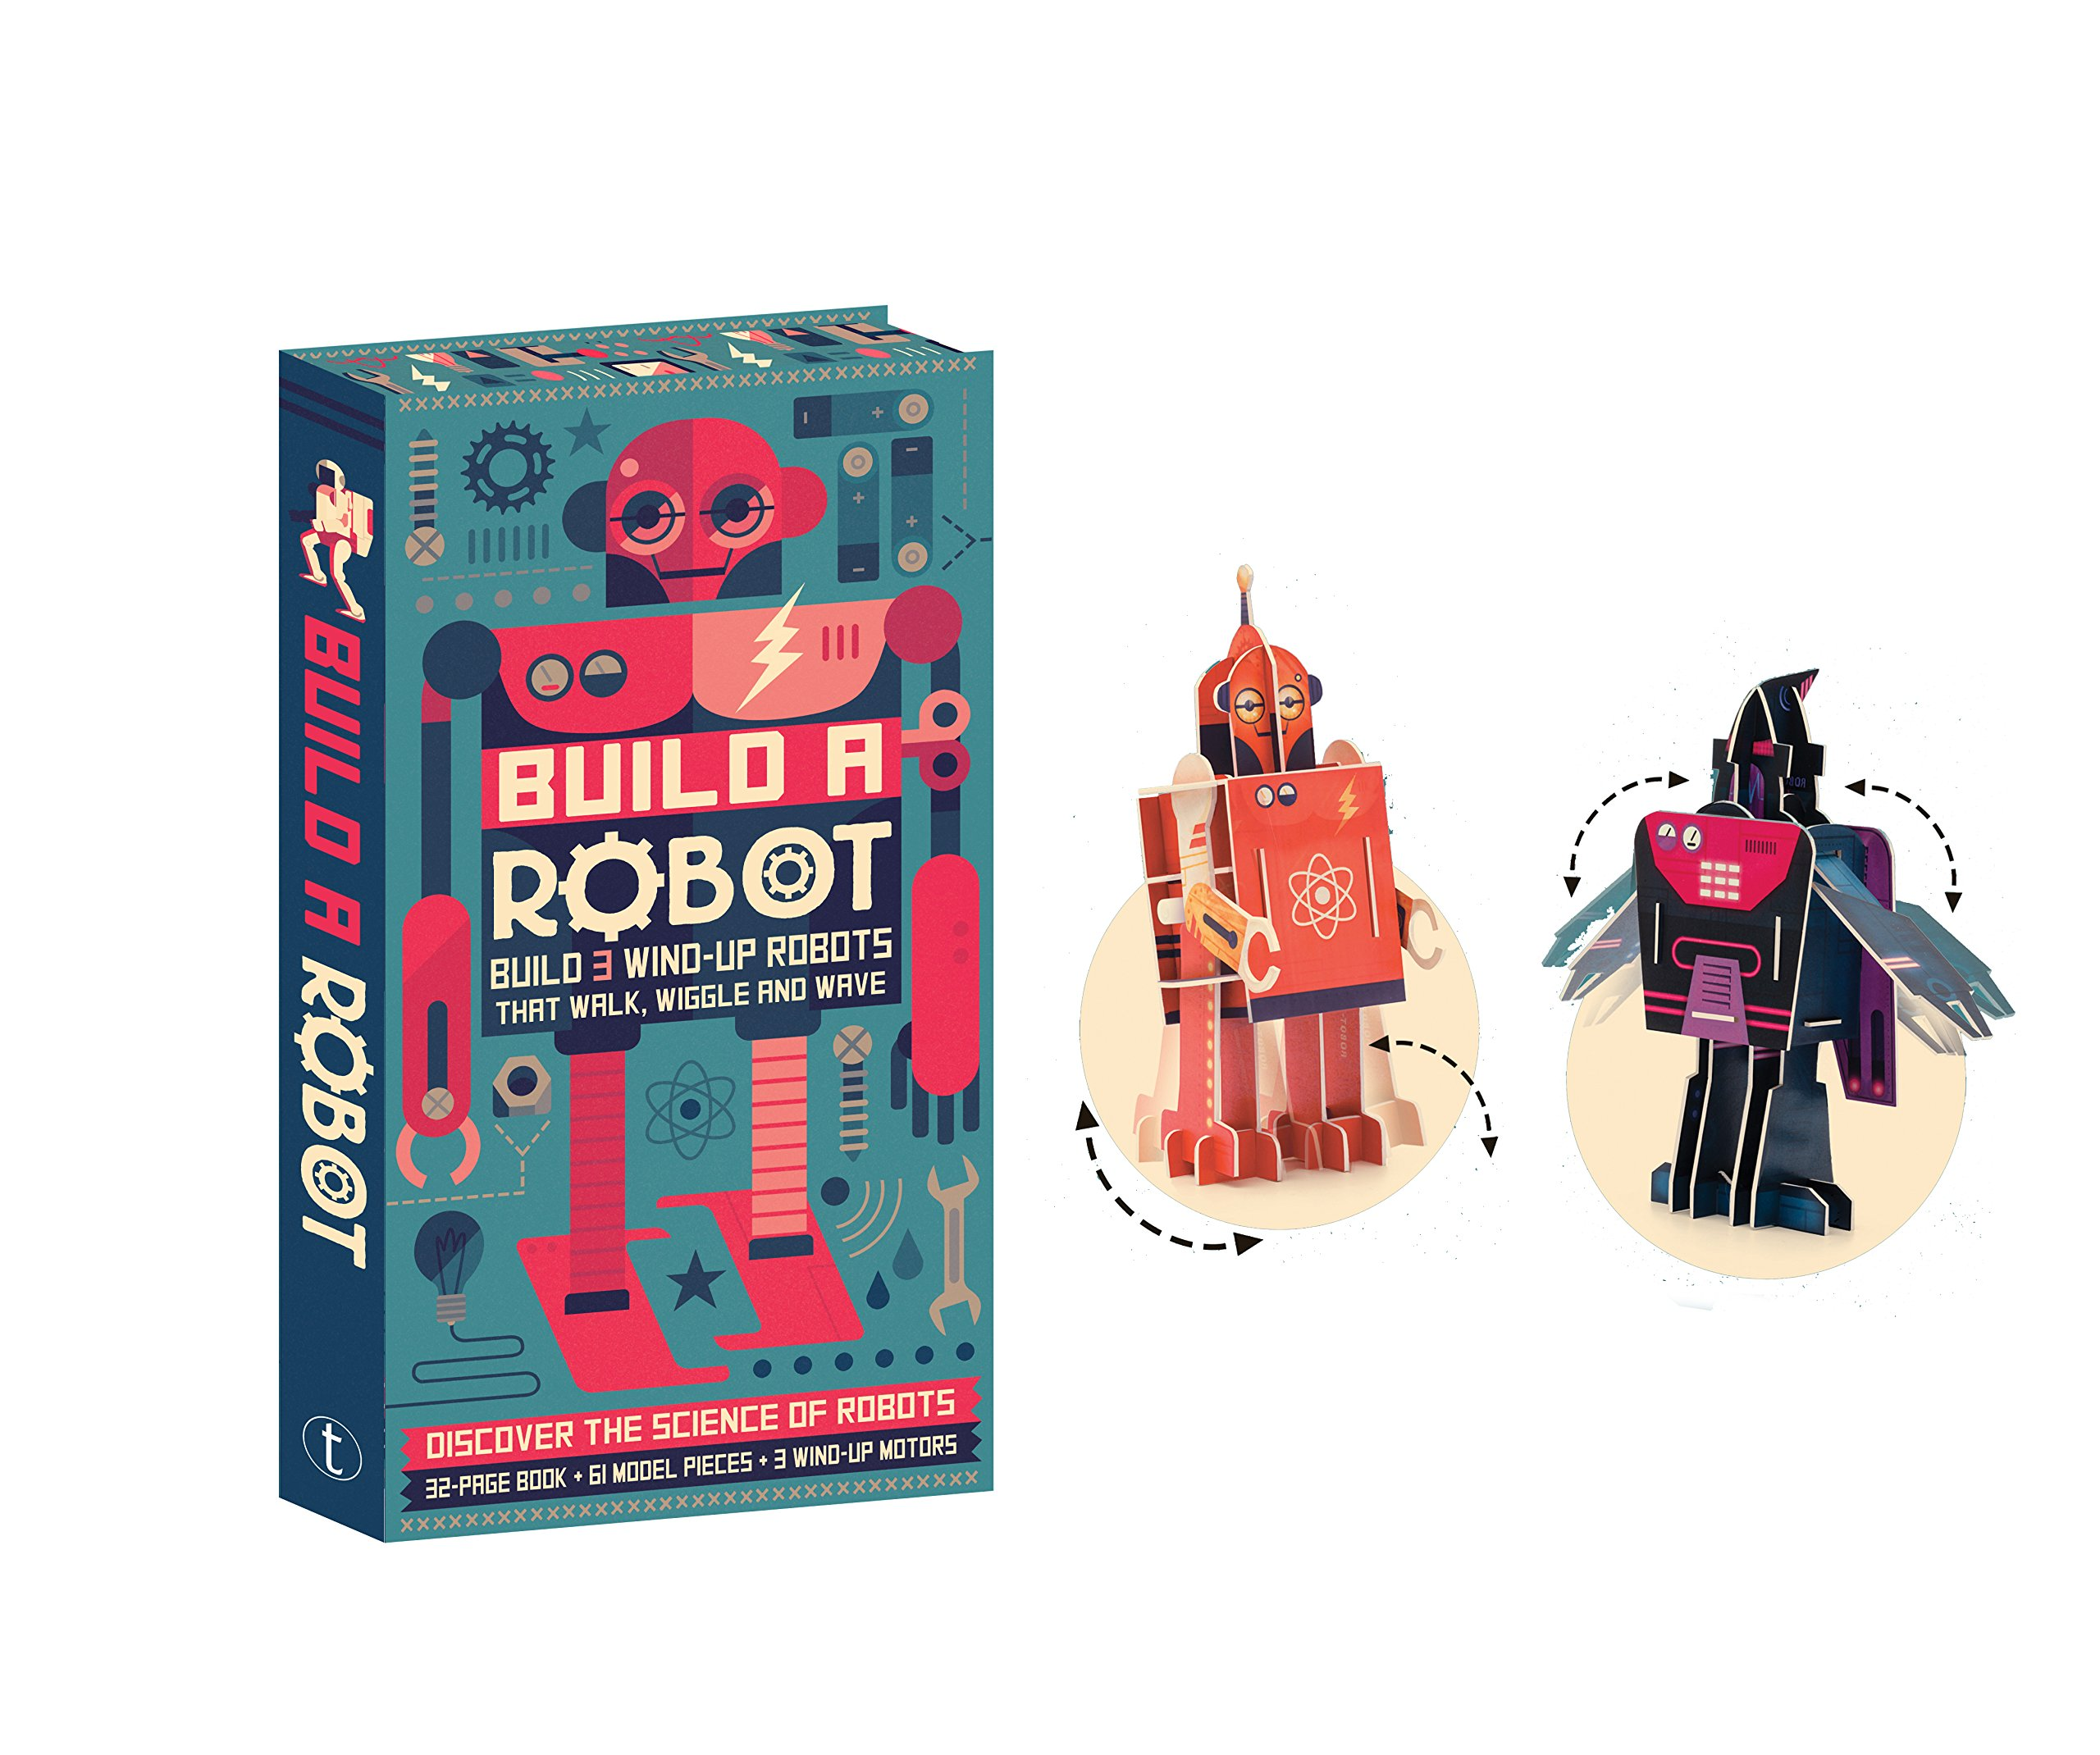 Build a Robot: Amazon.co.uk: Steve Parker, Owen Davey ...